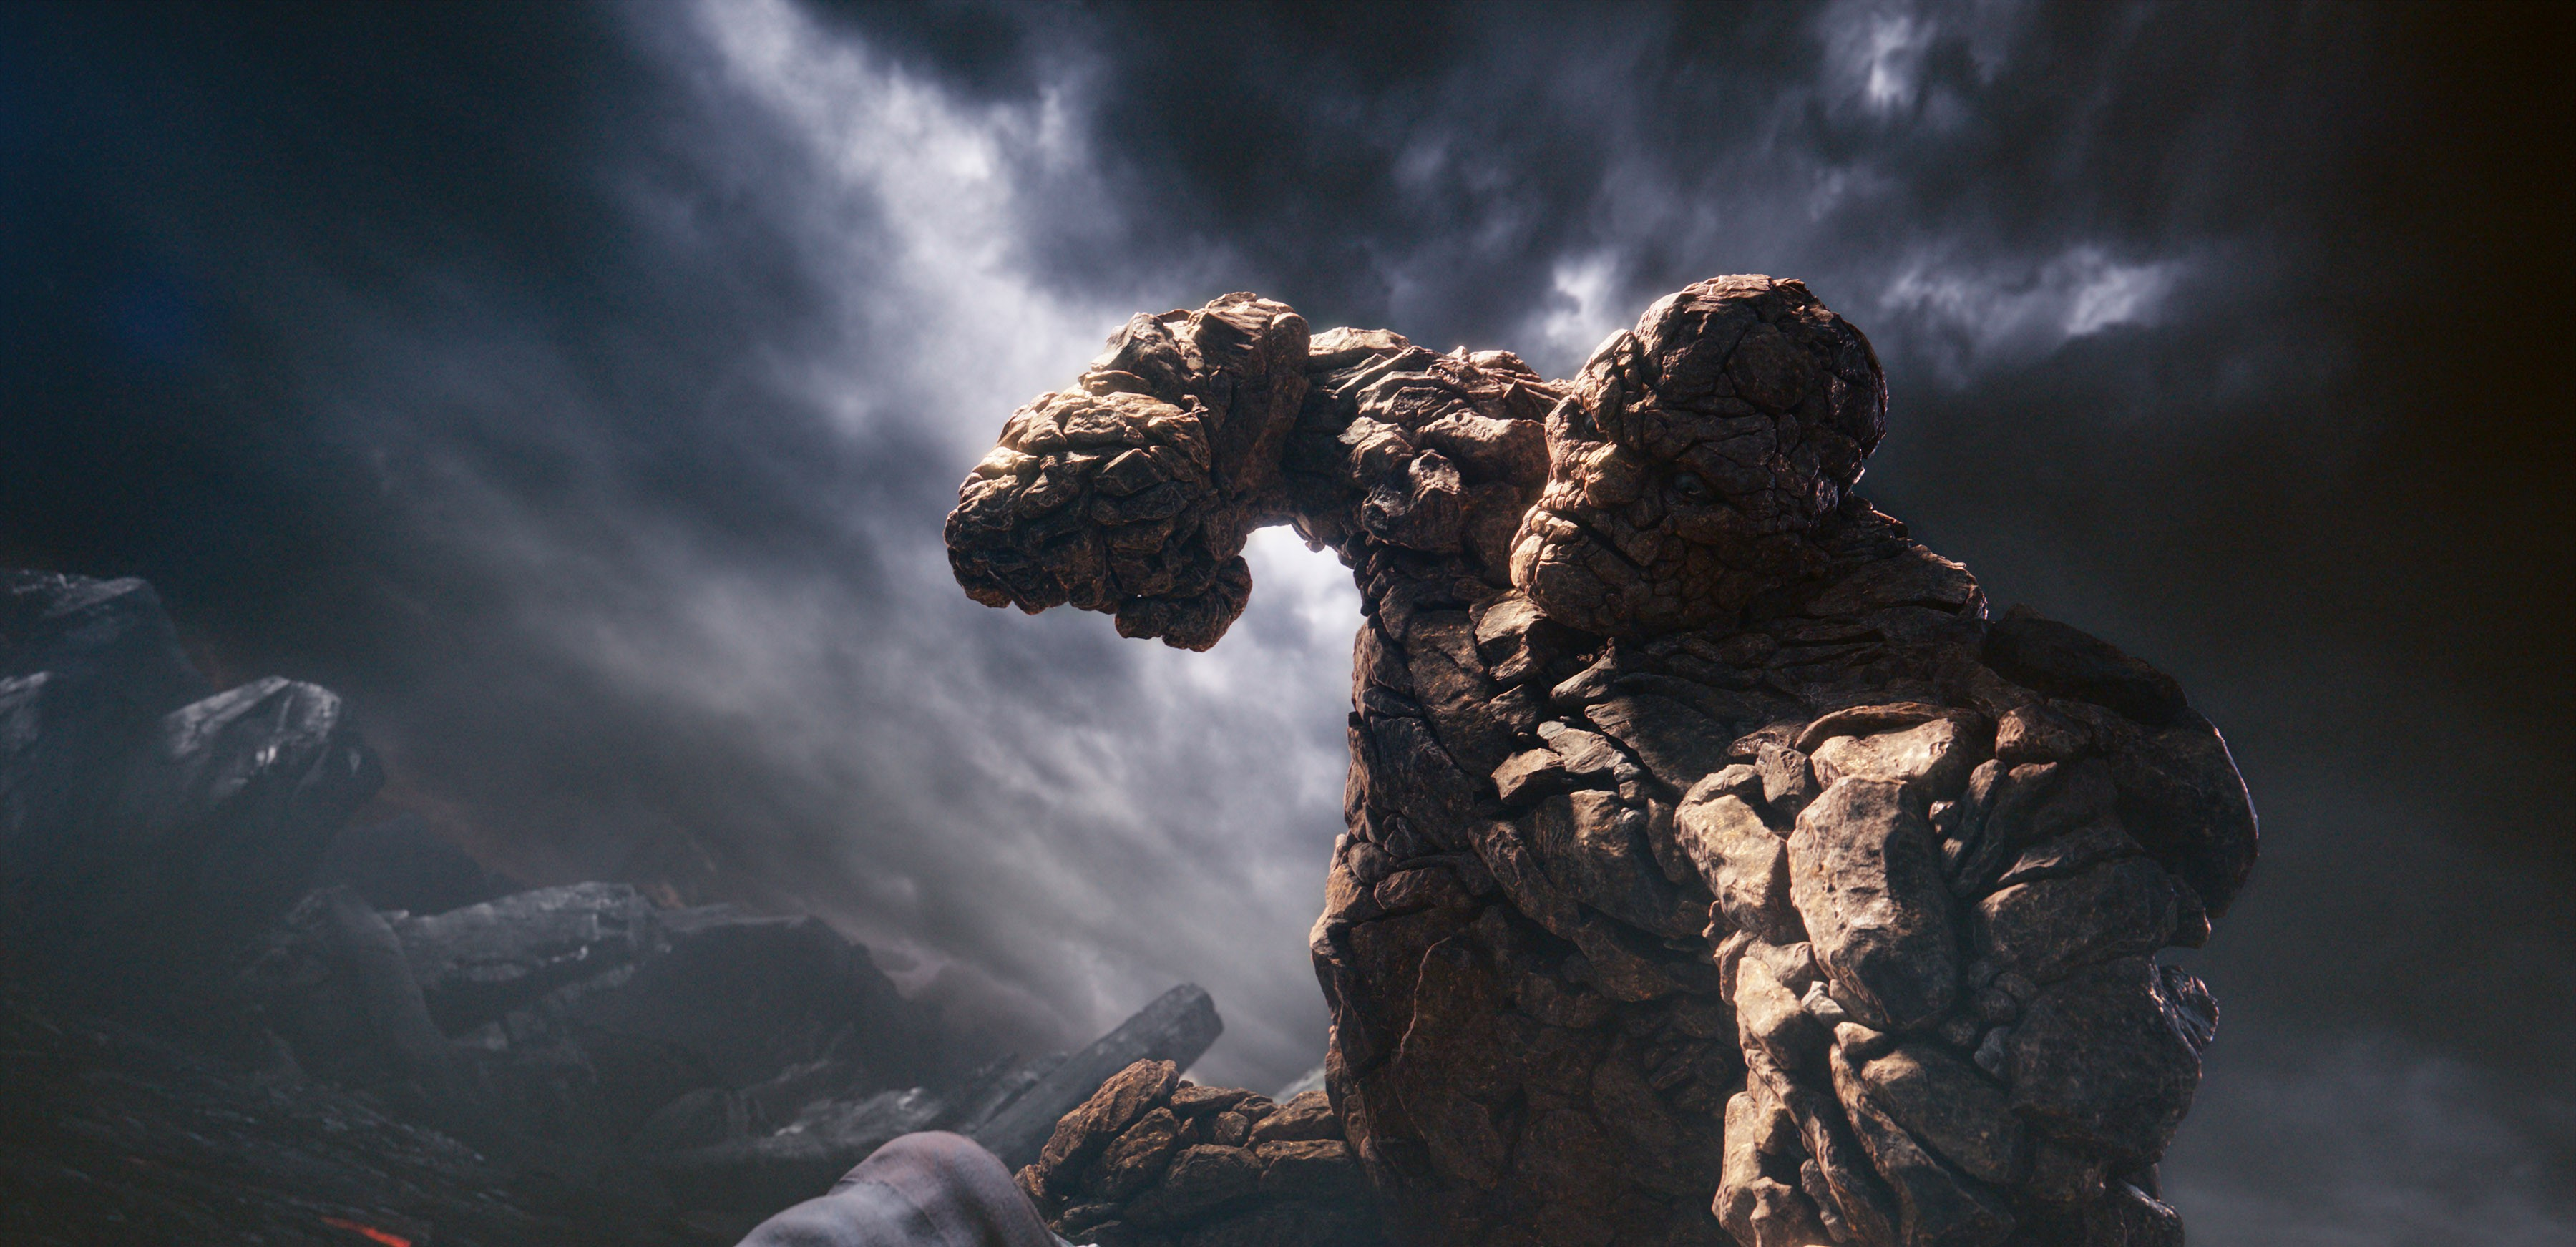 Wallpaper fantastic four best movies of 2015 movie for Wallpaper home 2015